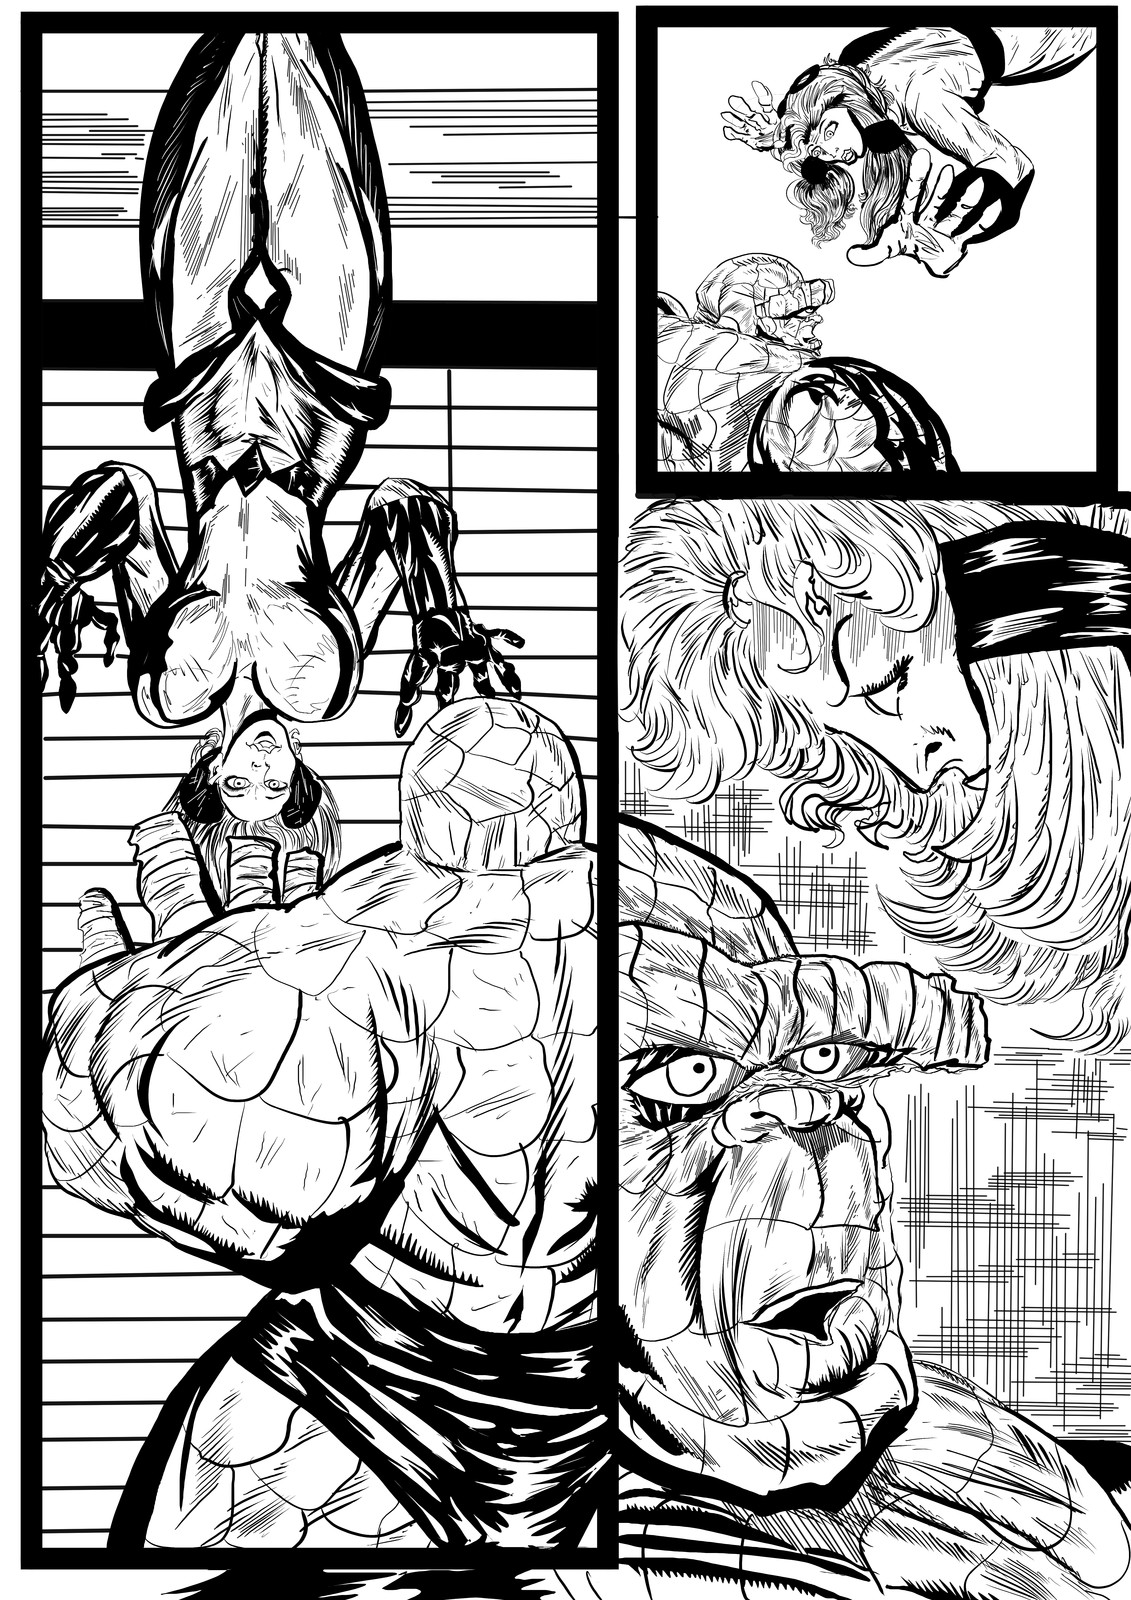 Fantastic Four Sequential Sample artwork page 6 by Brian Robinson